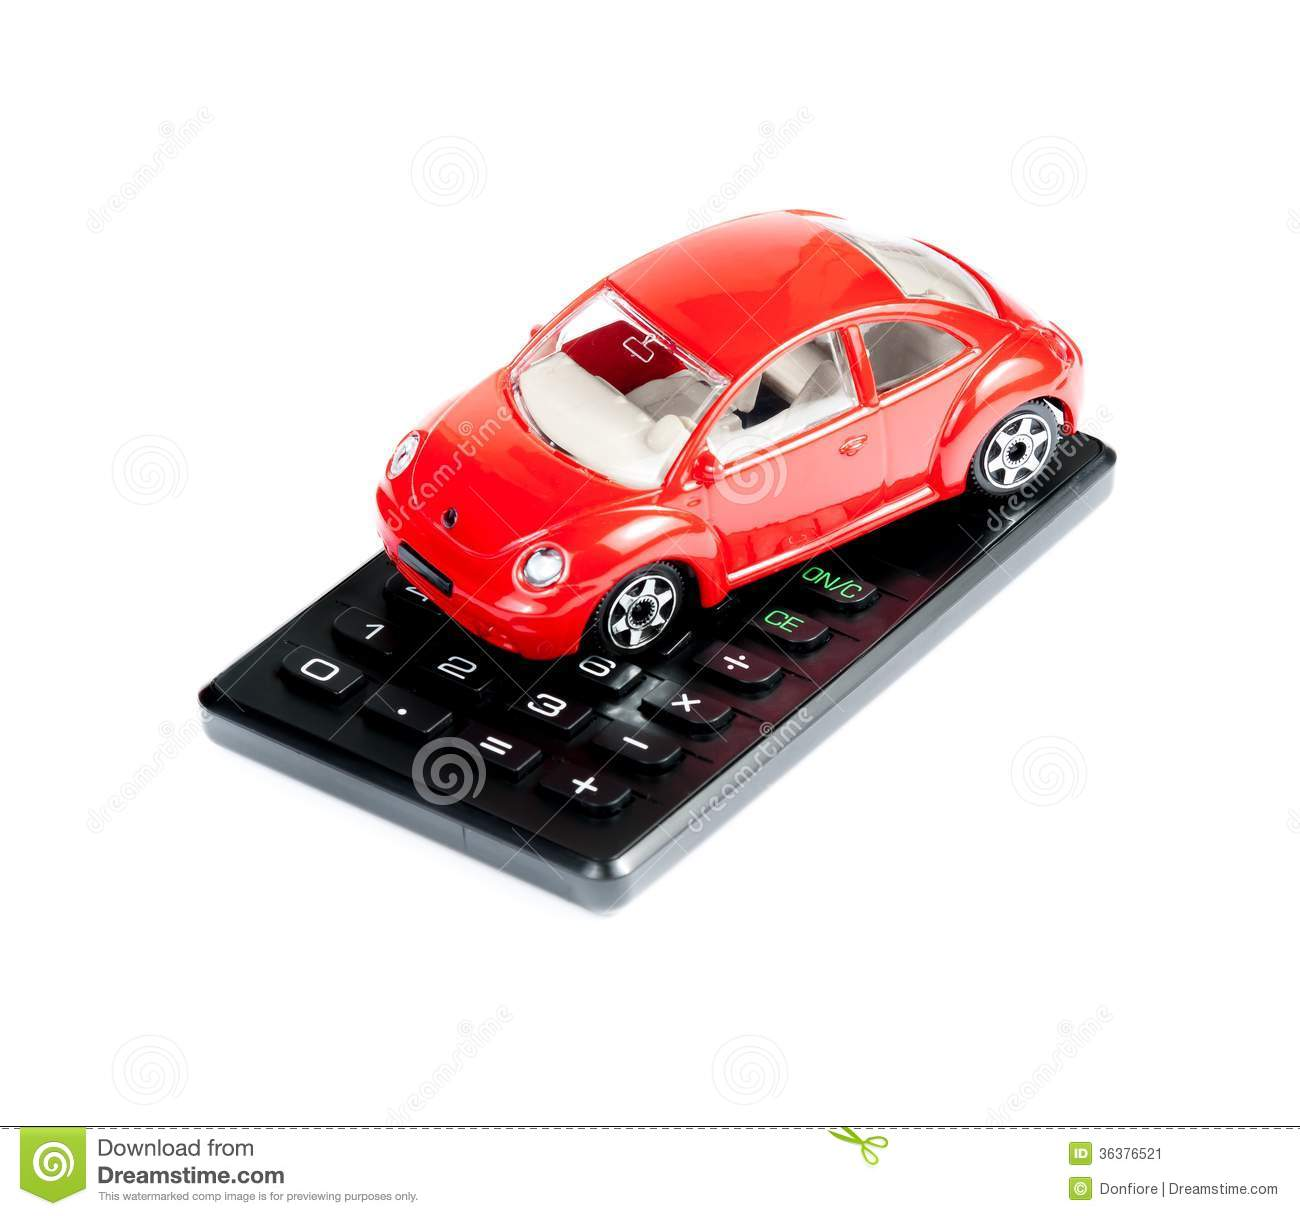 Toy Car And Calculator Concept For Insurance, Buying. Review Project Management Software. How To Create A Email Website. University Of Houston Executive Mba. Nursing Schools In Seattle Run To You Lyrics. Stratum Foundation Repair Nassau Pools Naples. Industrial Garbage Can Android Mobile Payment. Eclipse For Android Development. Meteorology Classes Online Sat Courses Online